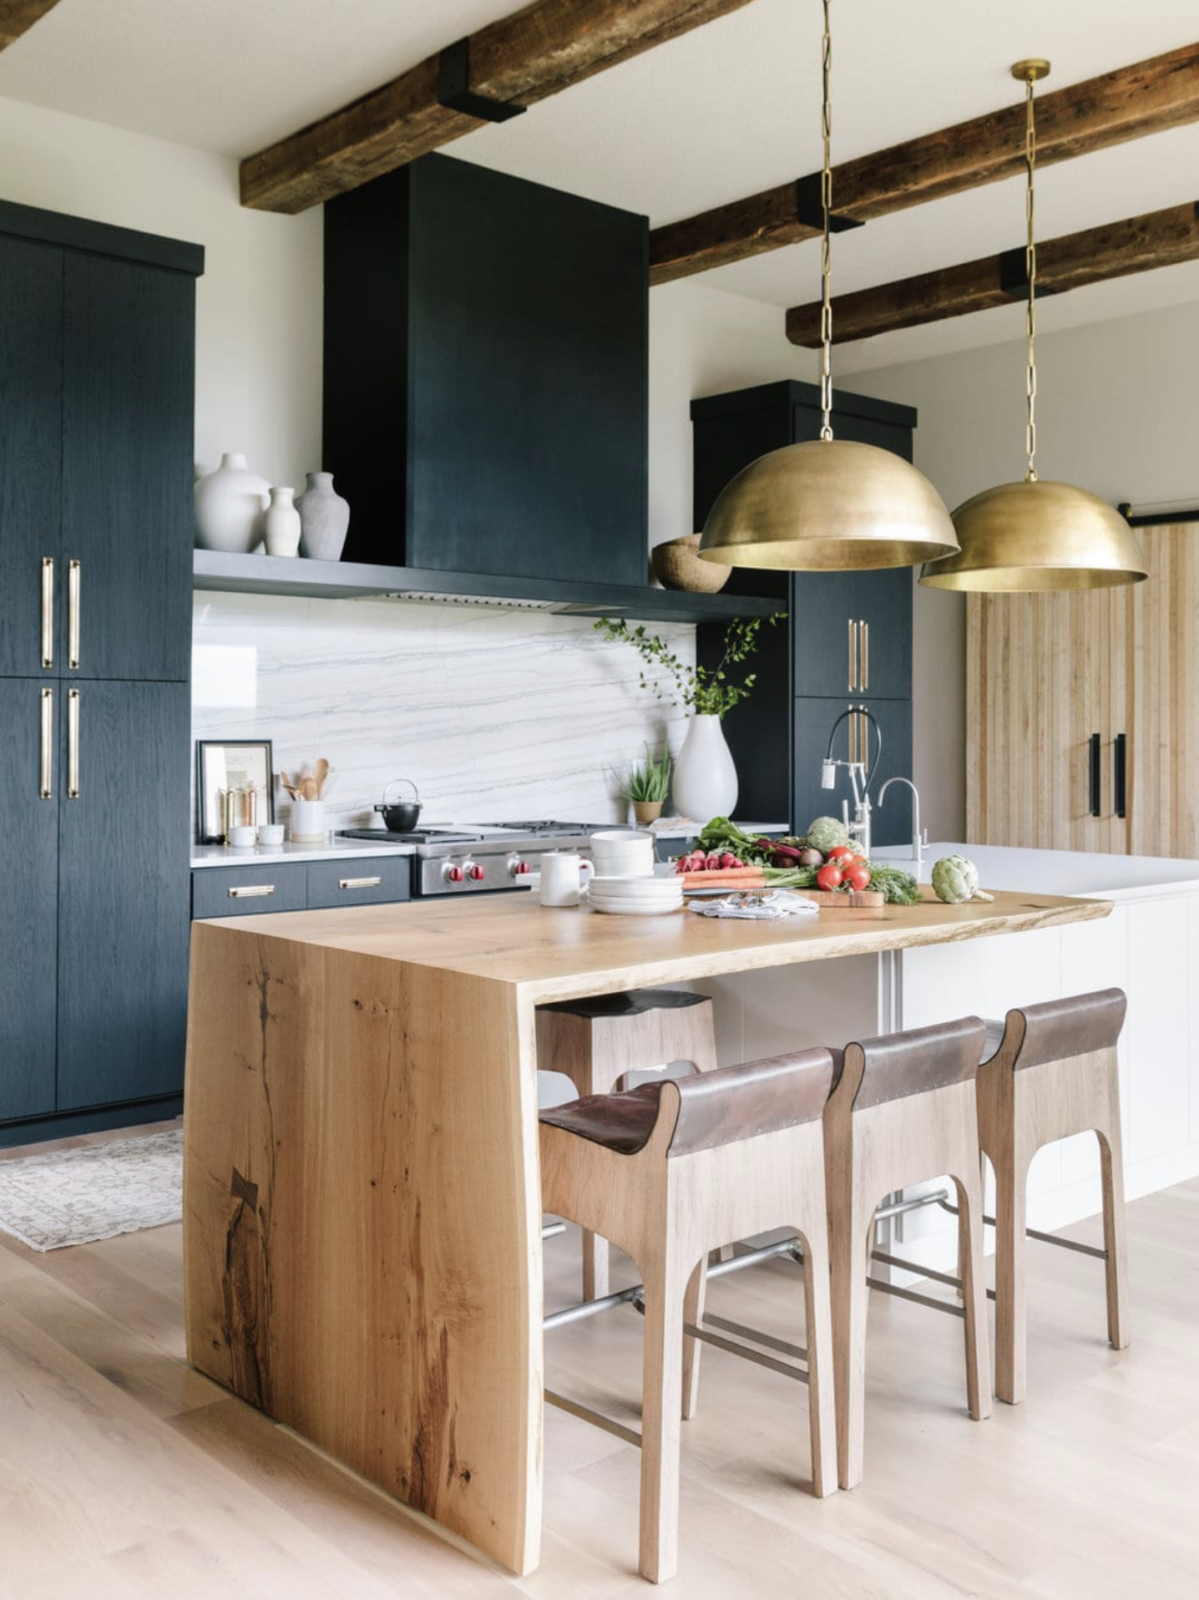 Blonde Wood How To Use It Everywhere The Identite Collective Kitchen Style Interior Design Kitchen Home Kitchens